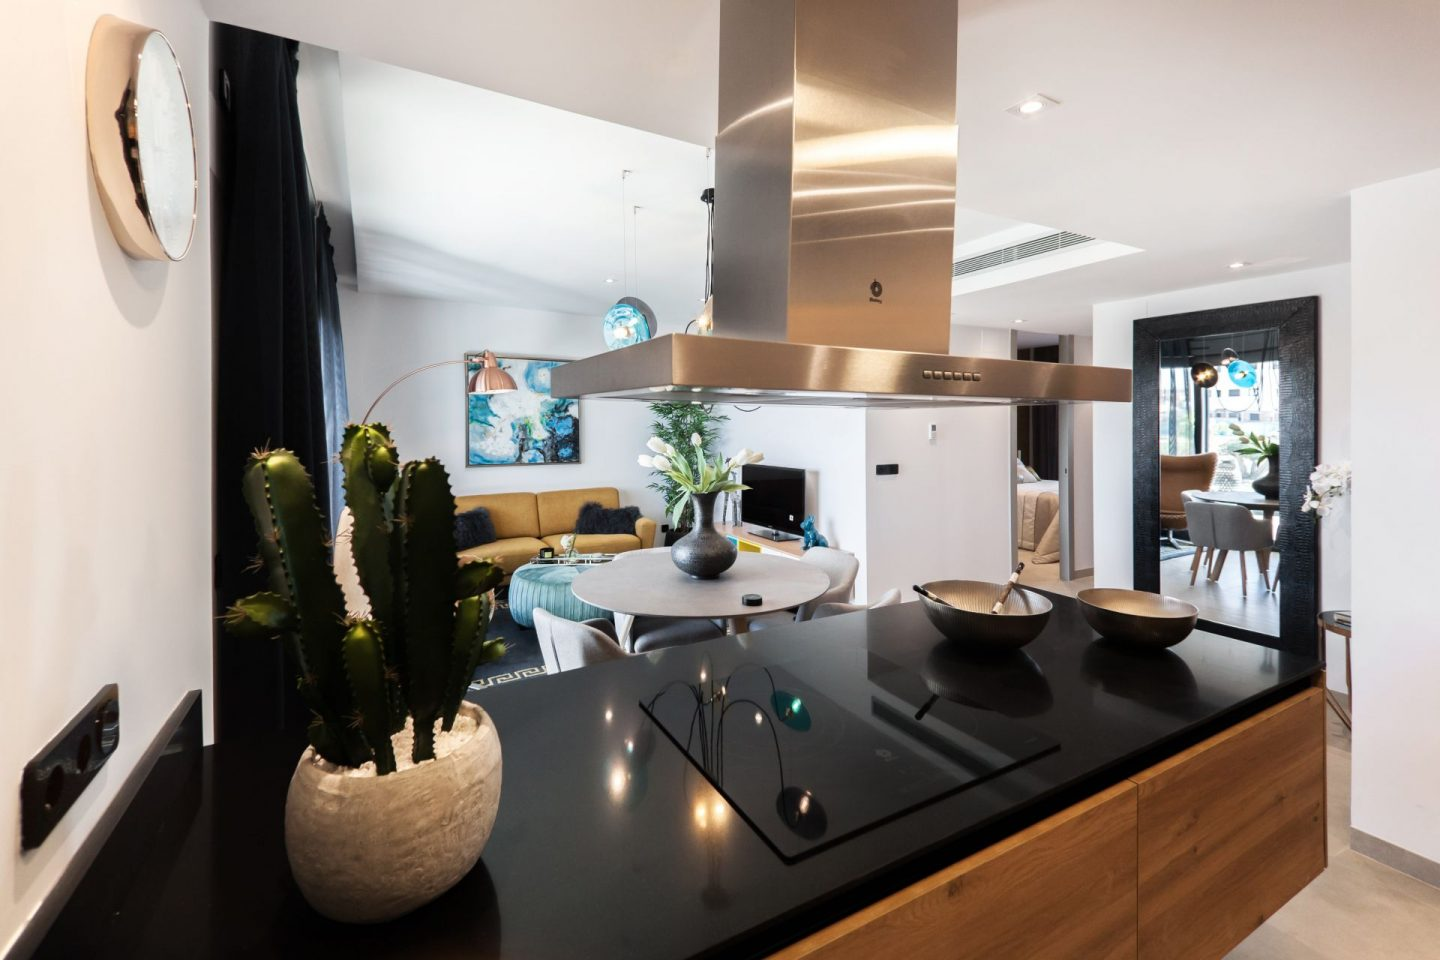 , Home:  Our 10 Dream Kitchen Features 2021